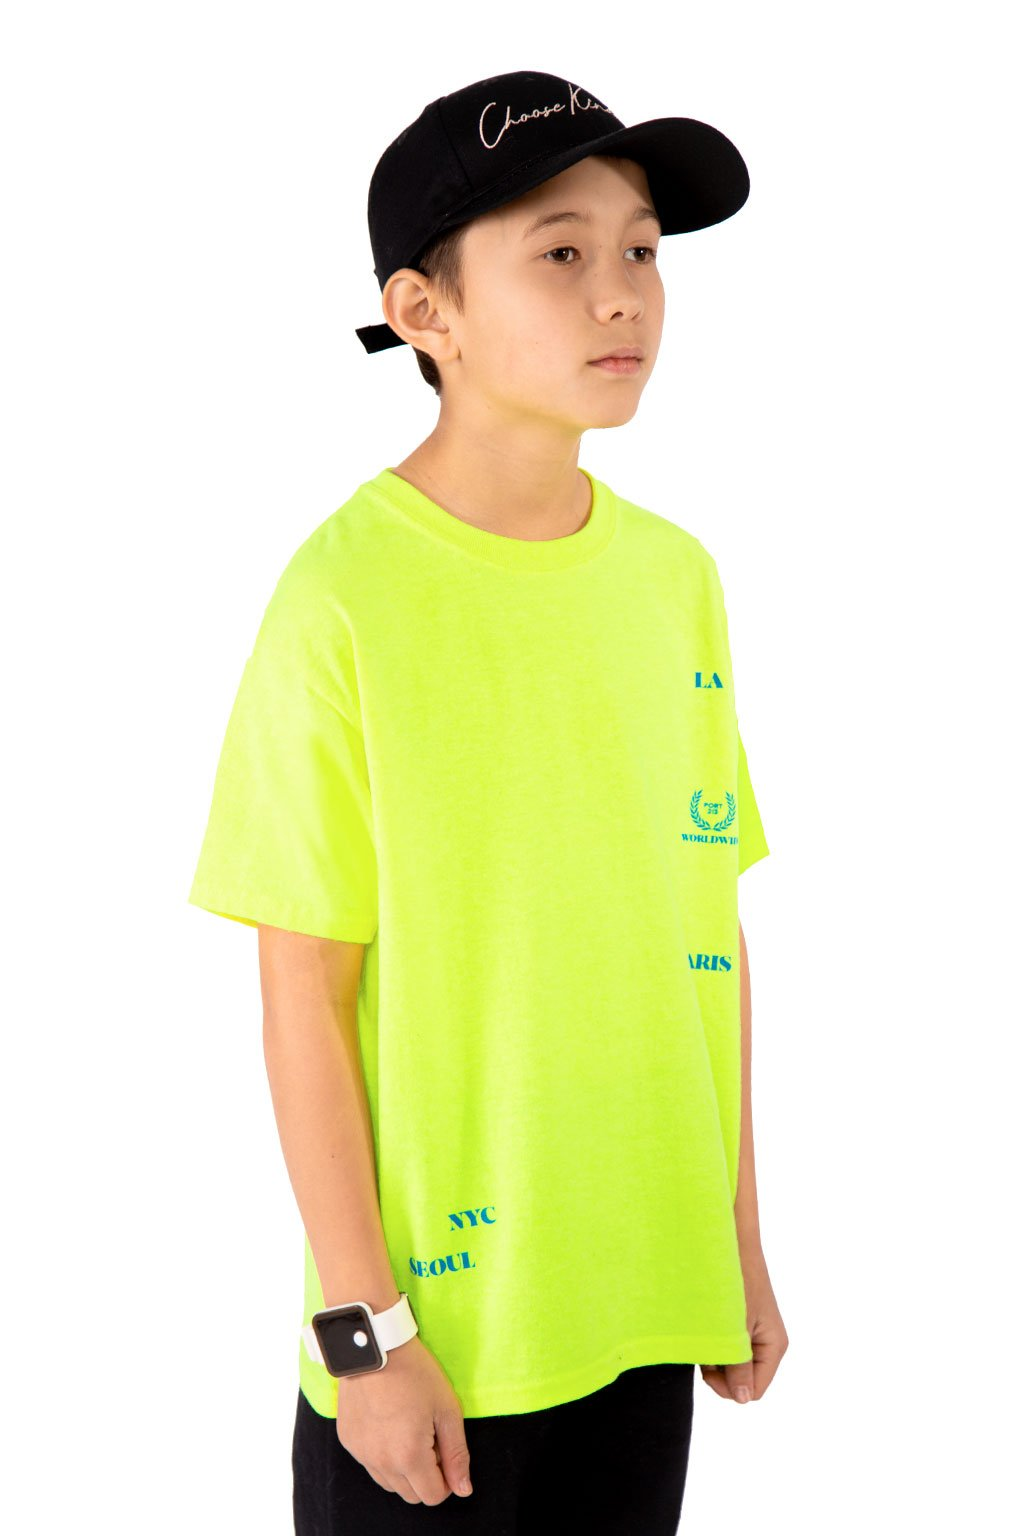 Green Cities T-Shirt - Port 213.com